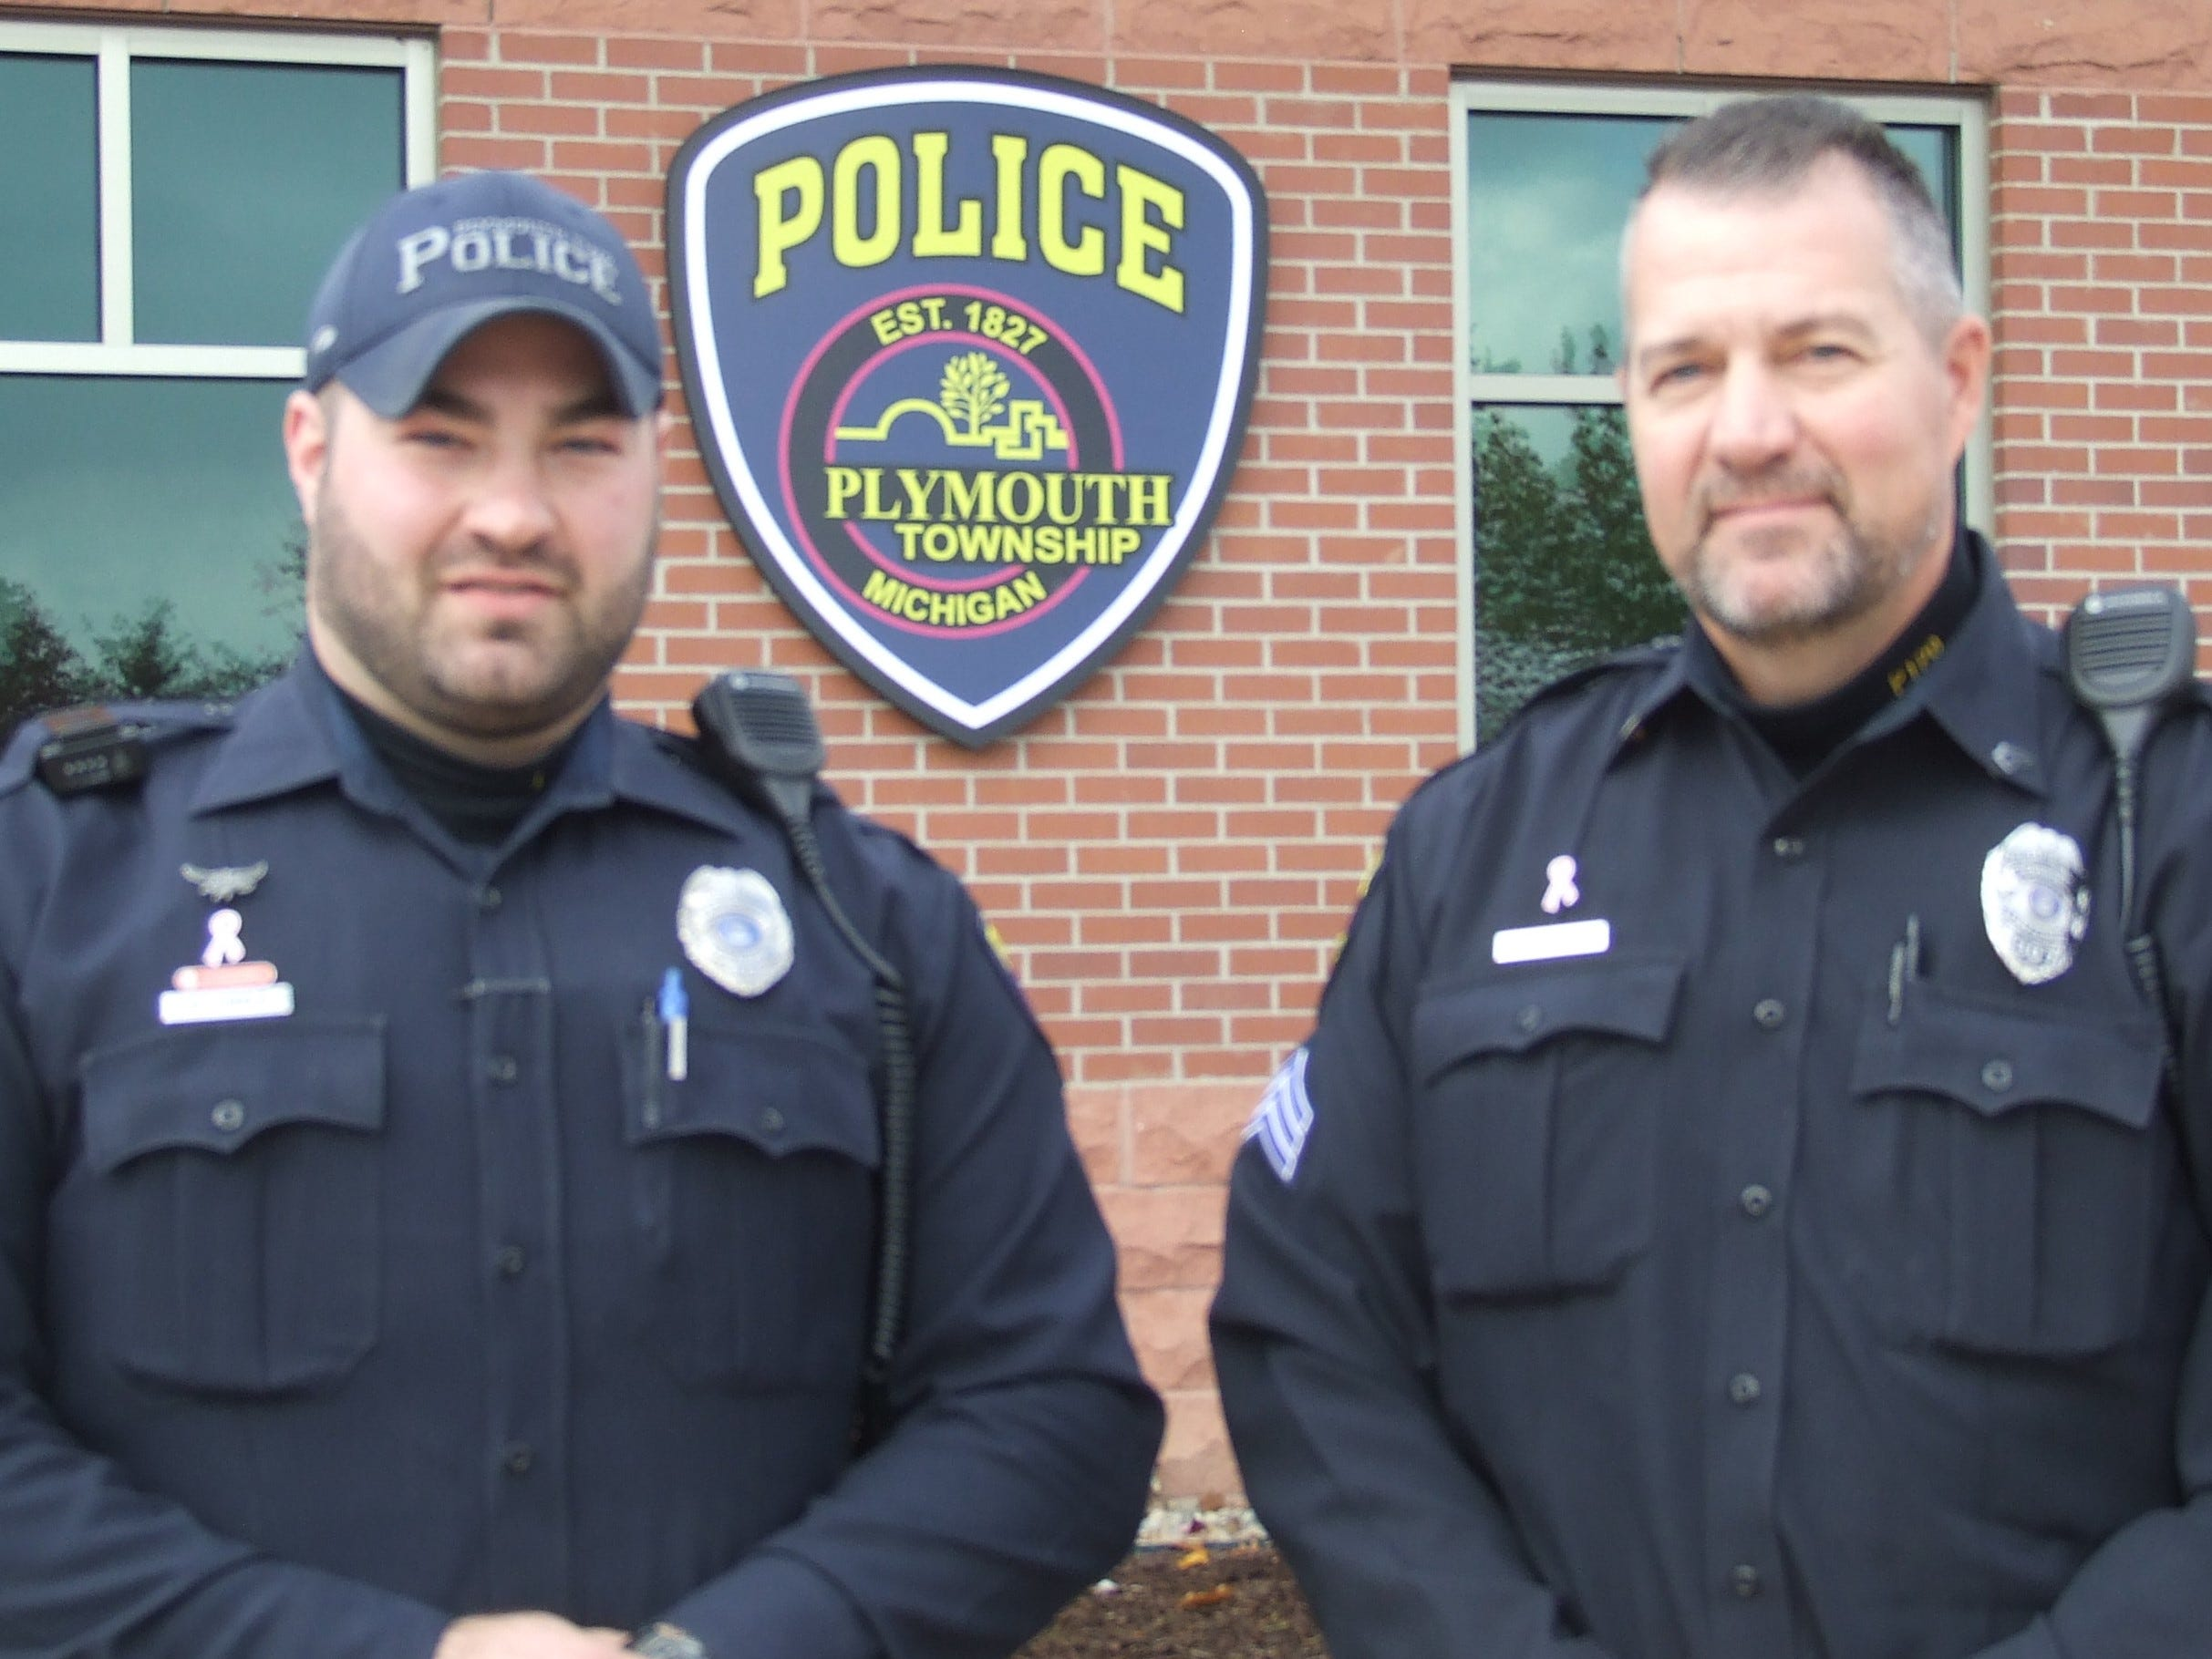 Plymouth Twp. police adopt bearded look in fundraiser to battle cancer